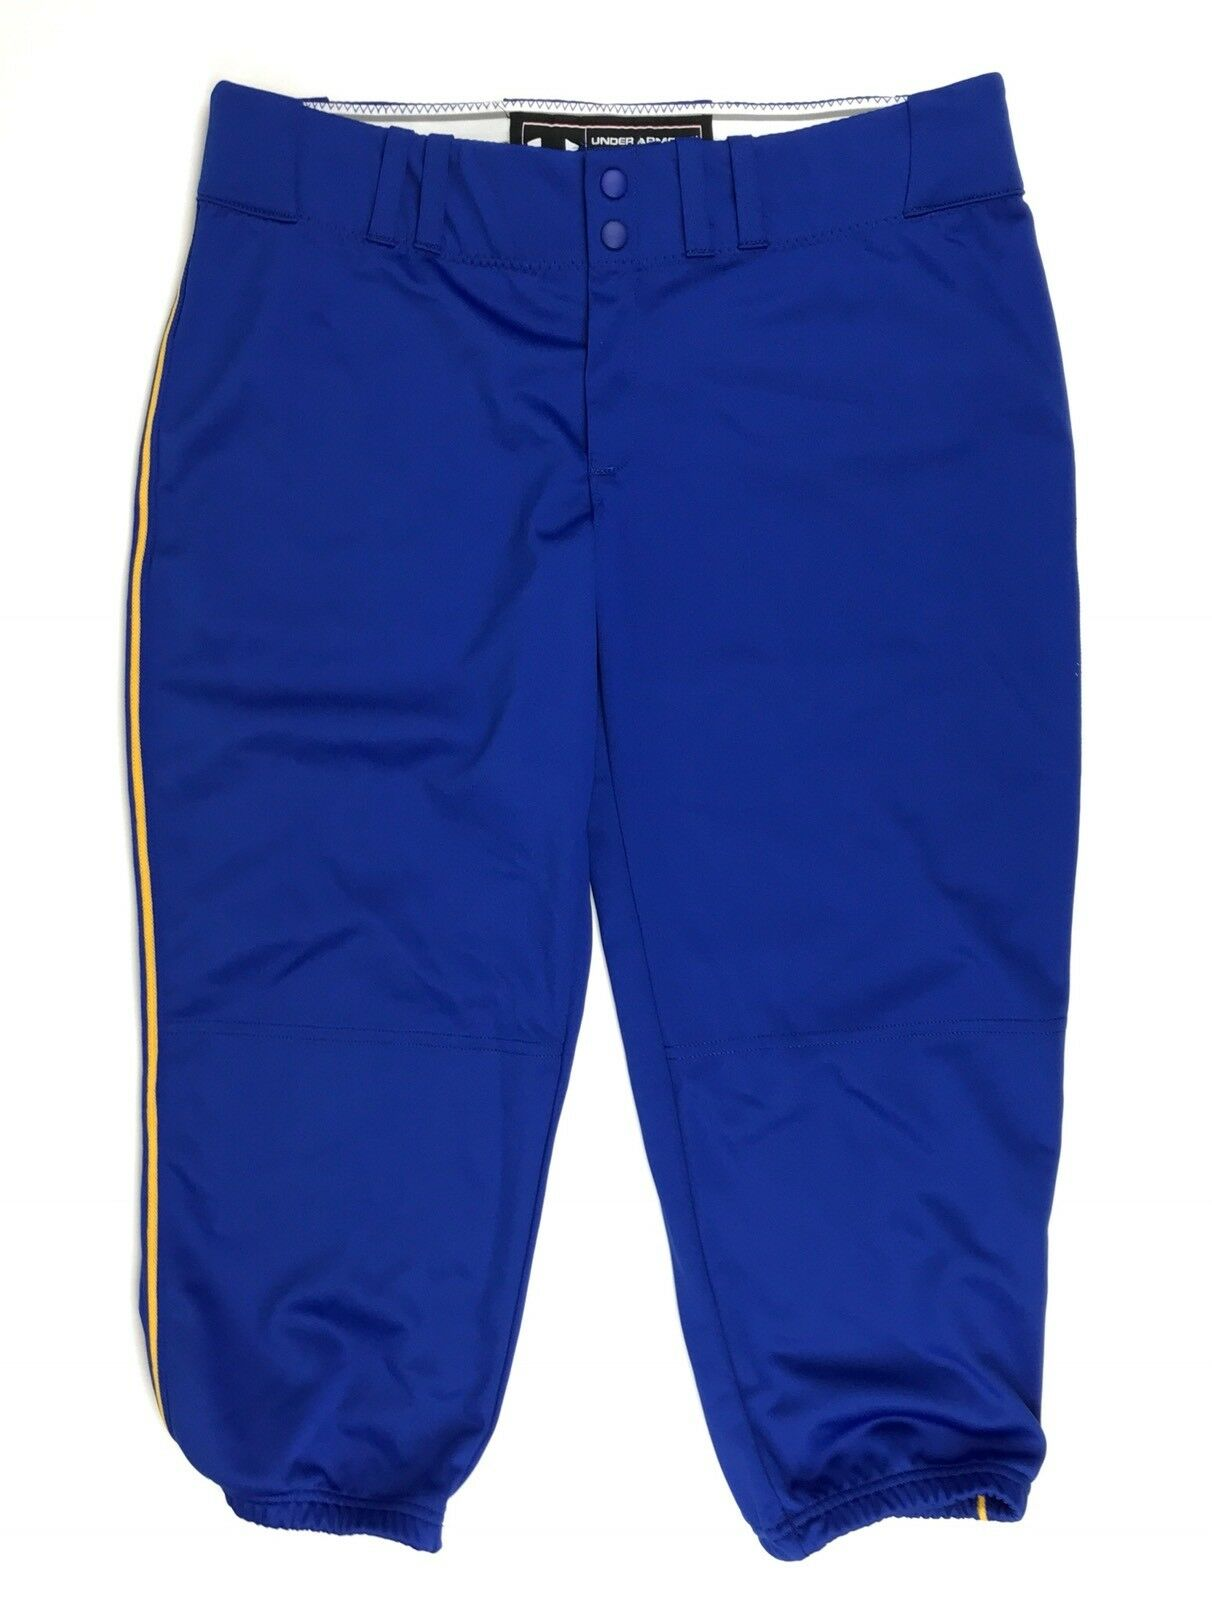 New Under Armour Women/'s Large One-Hop Piped Softball Pant Blue Yellow $45